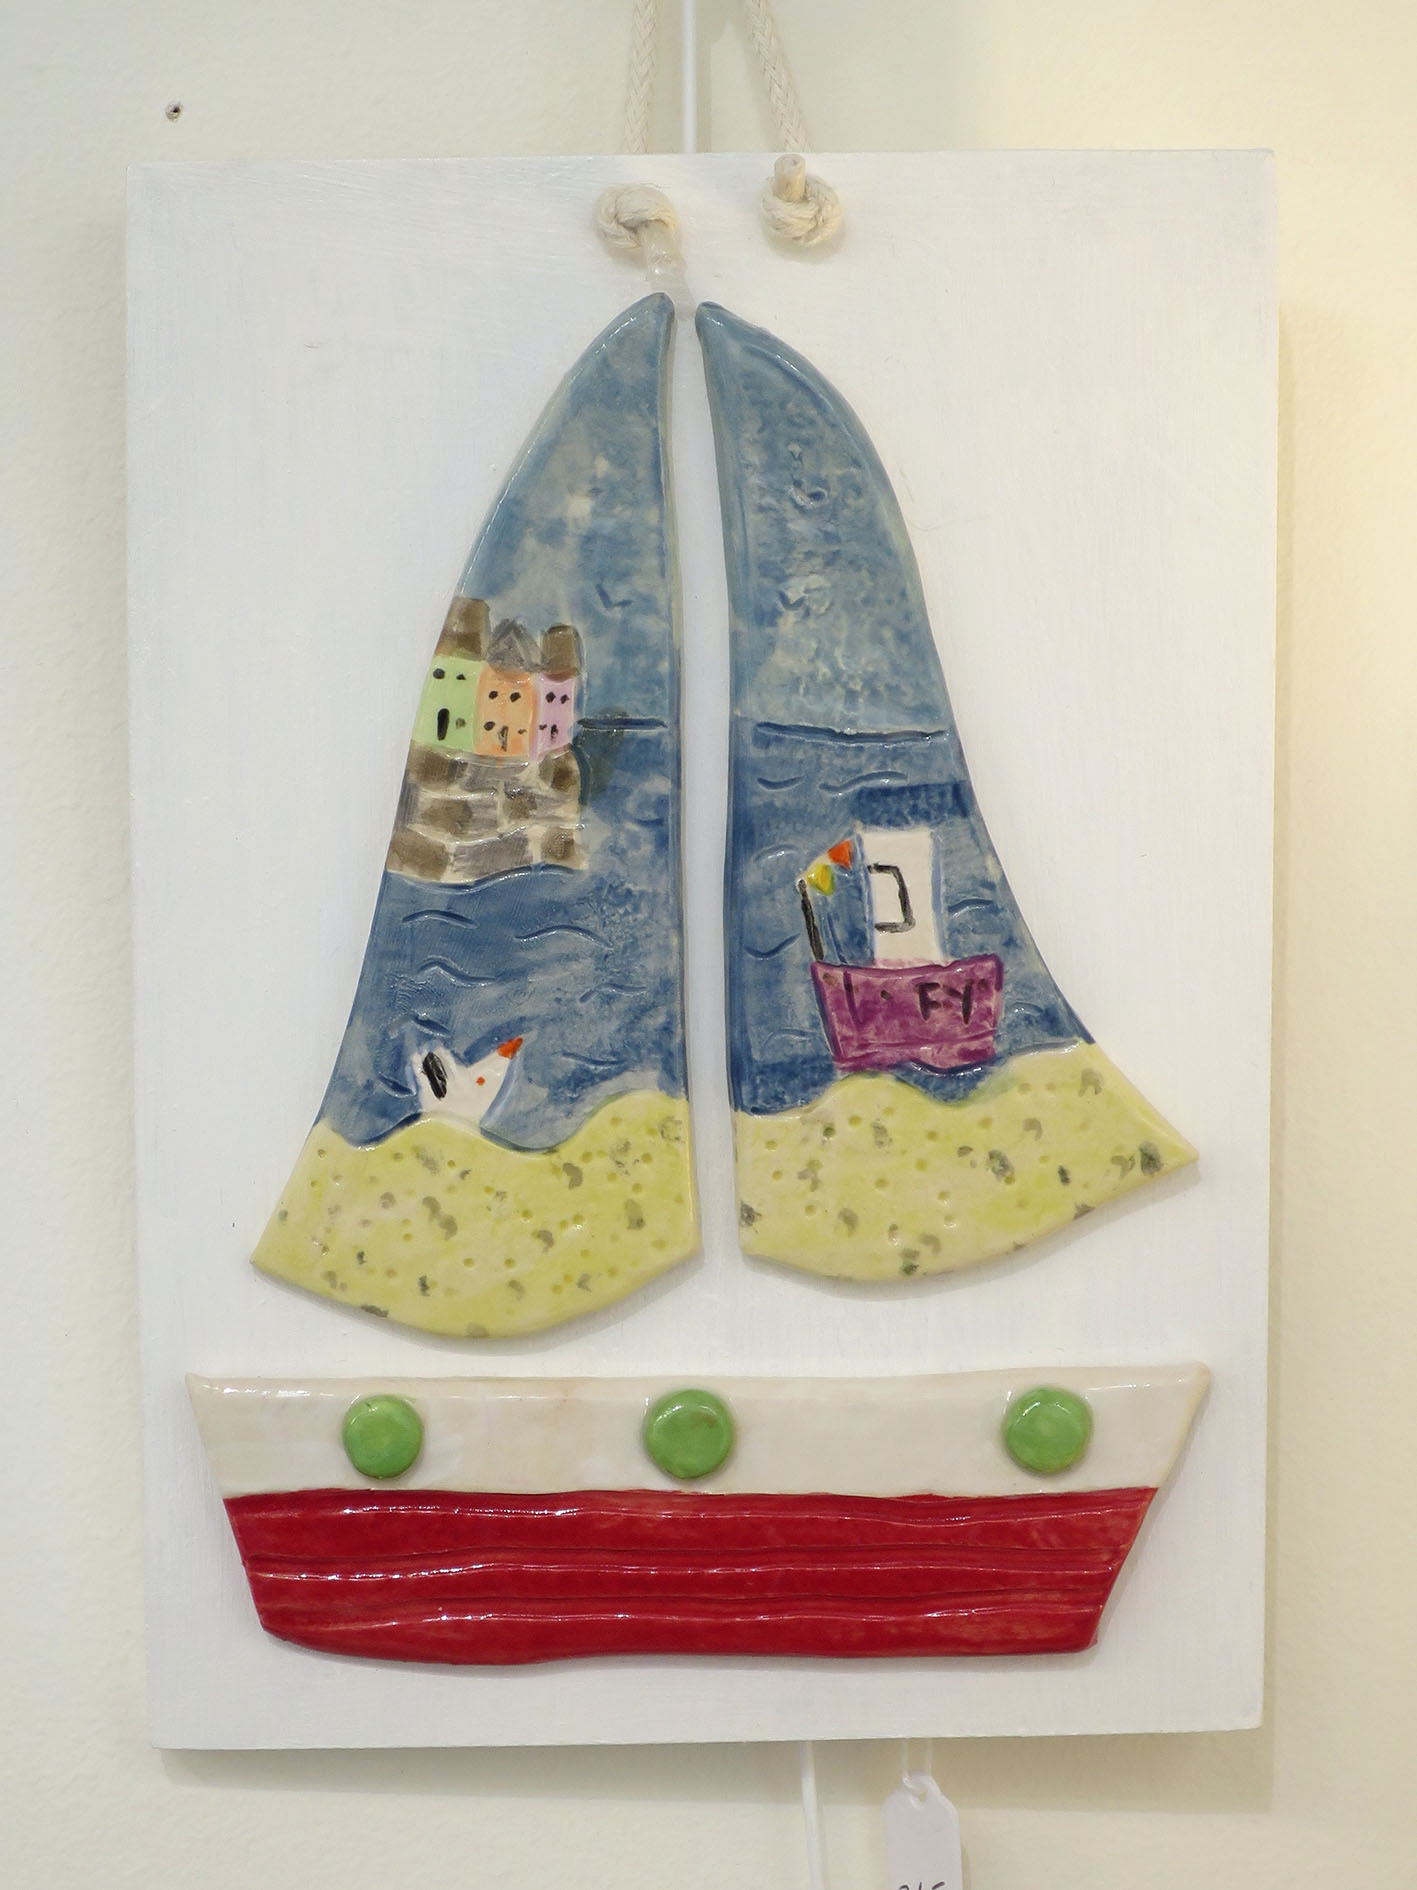 Nicky_Bowler_Boat_On_Plaque